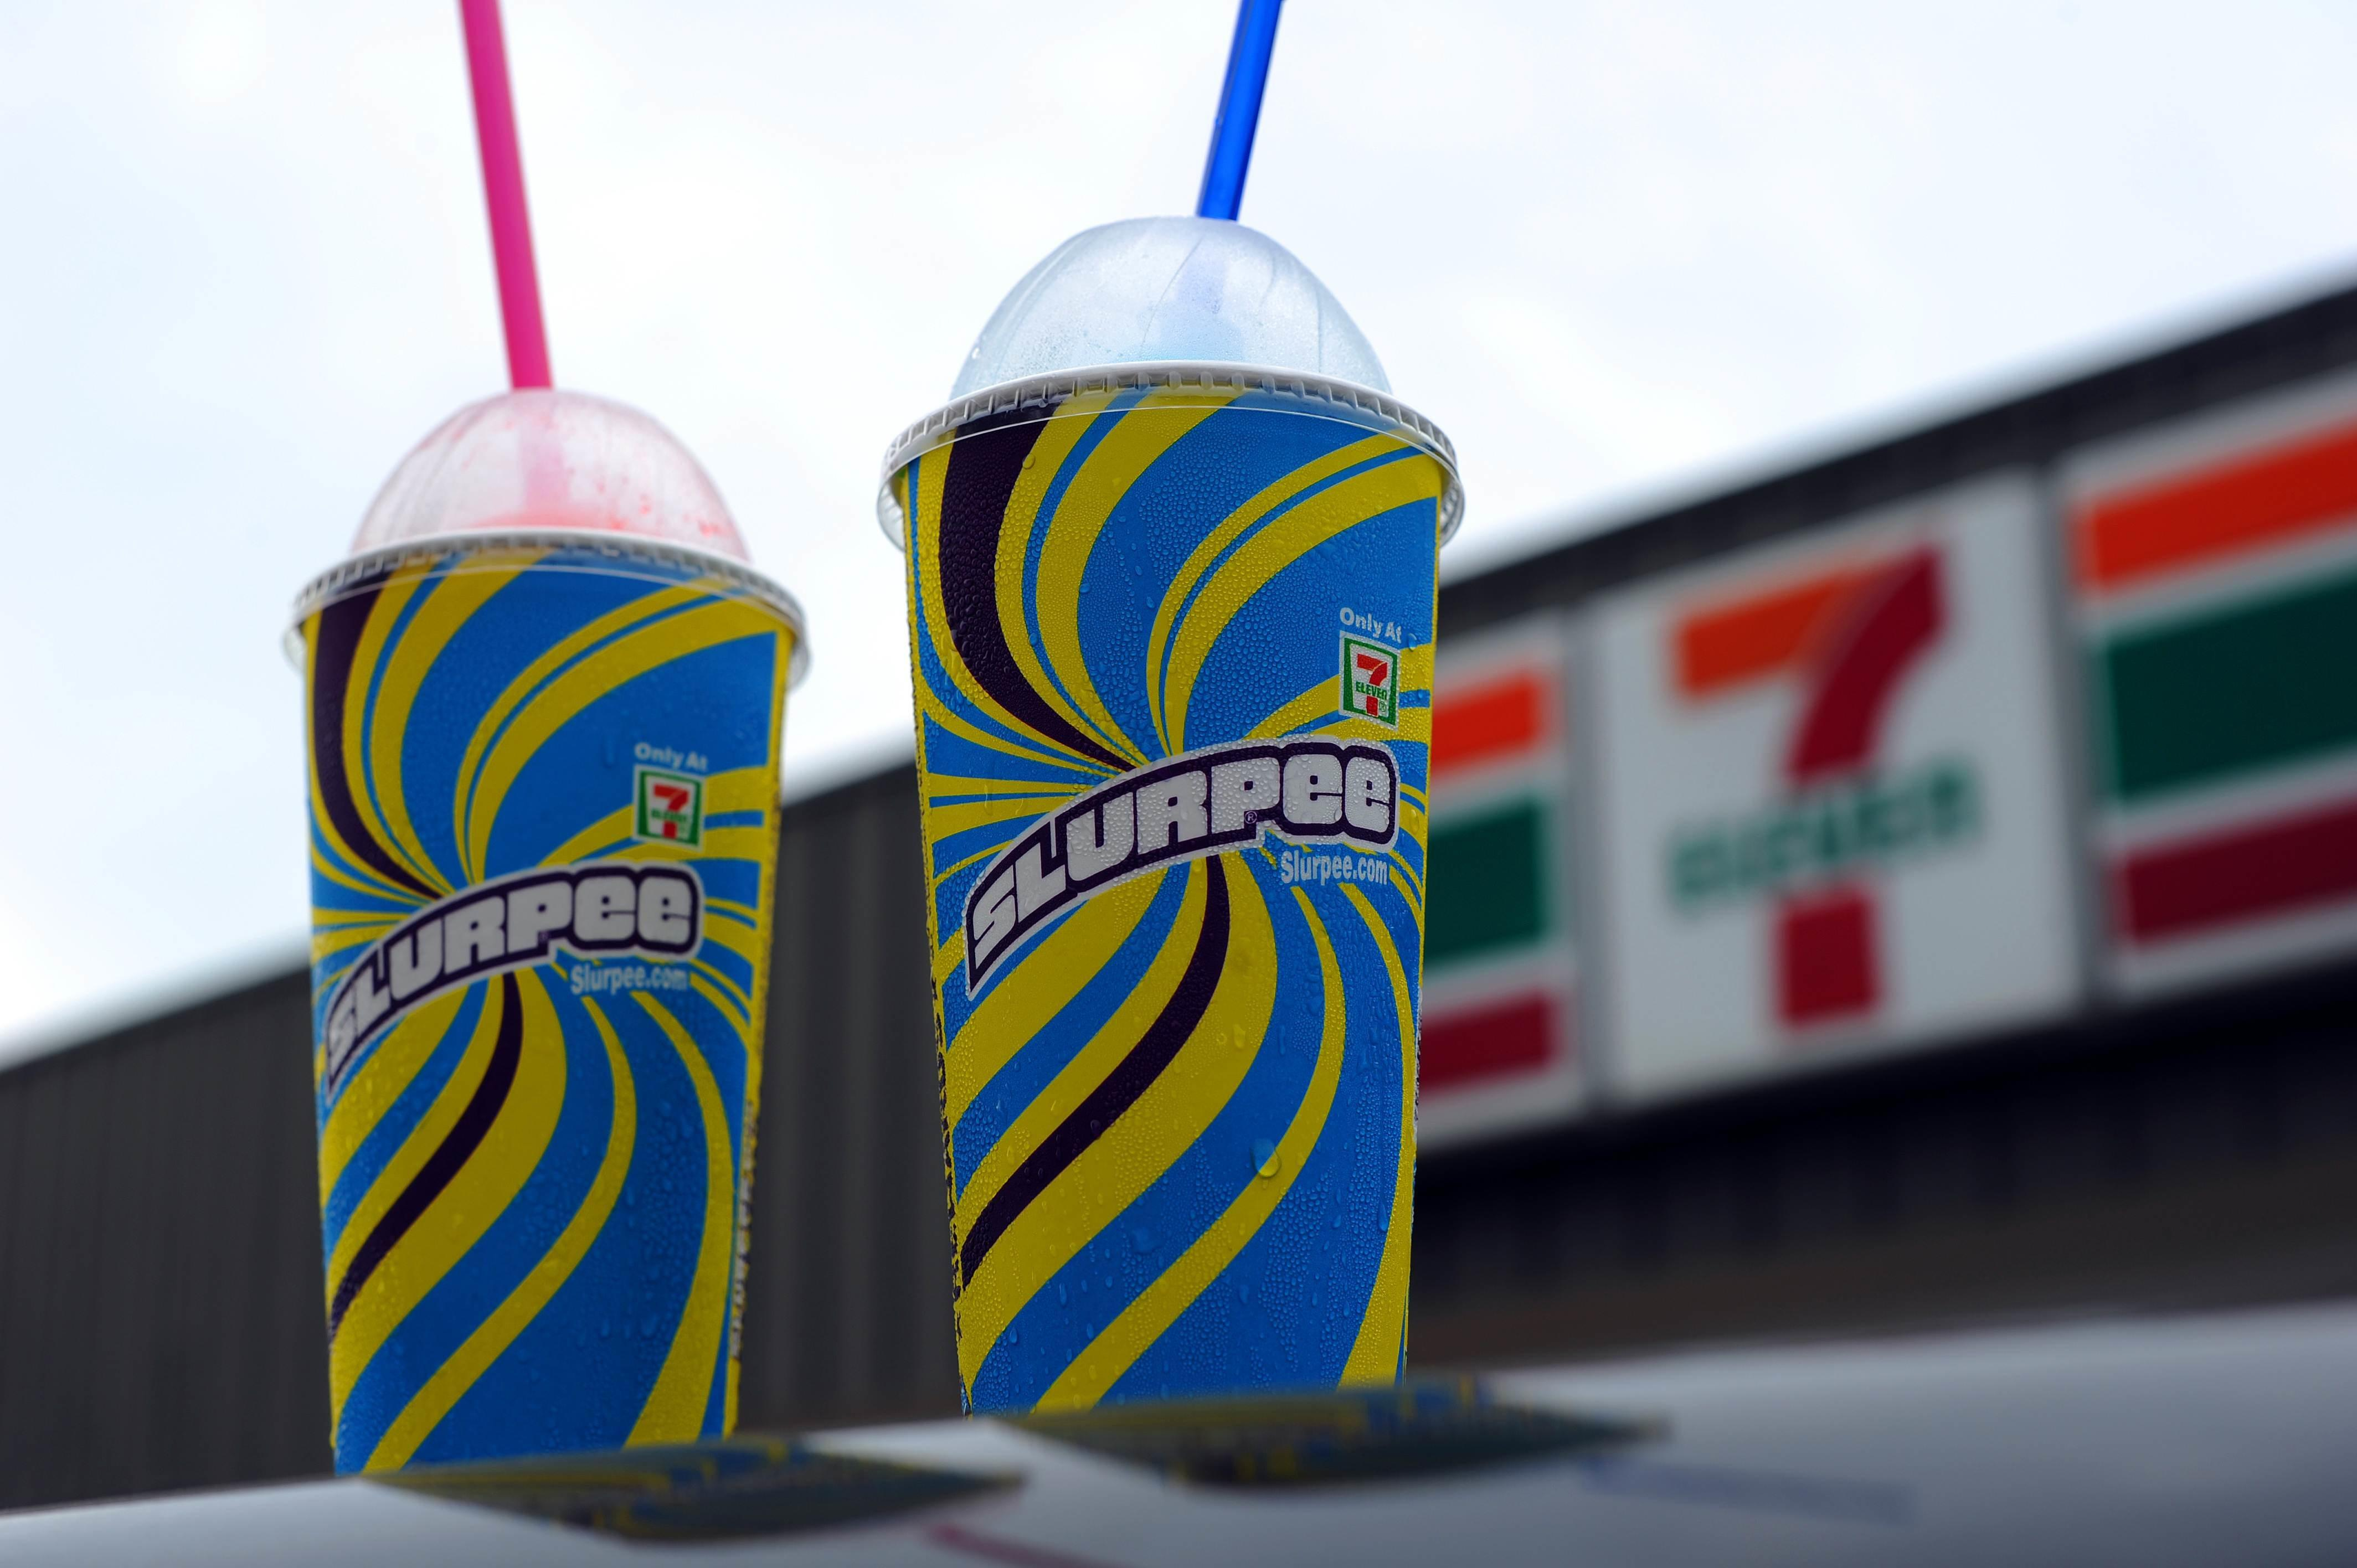 It S Free Slur Day At 7 Eleven Today